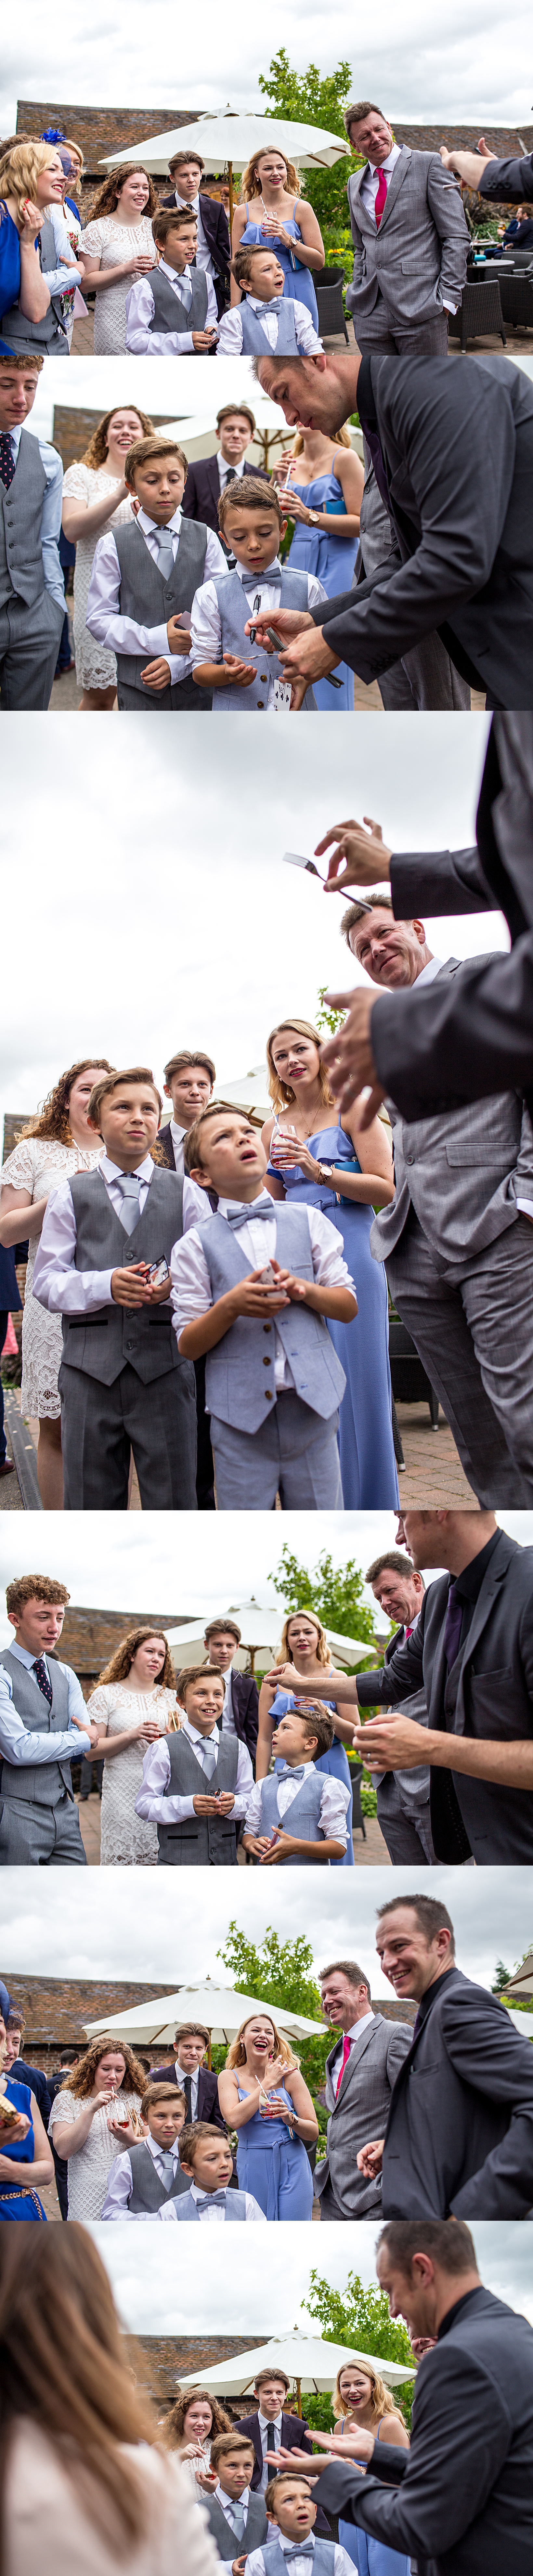 Witnessing The Magic at Weddings Nick Rushton The Magician UK by Joie Takaki Photography